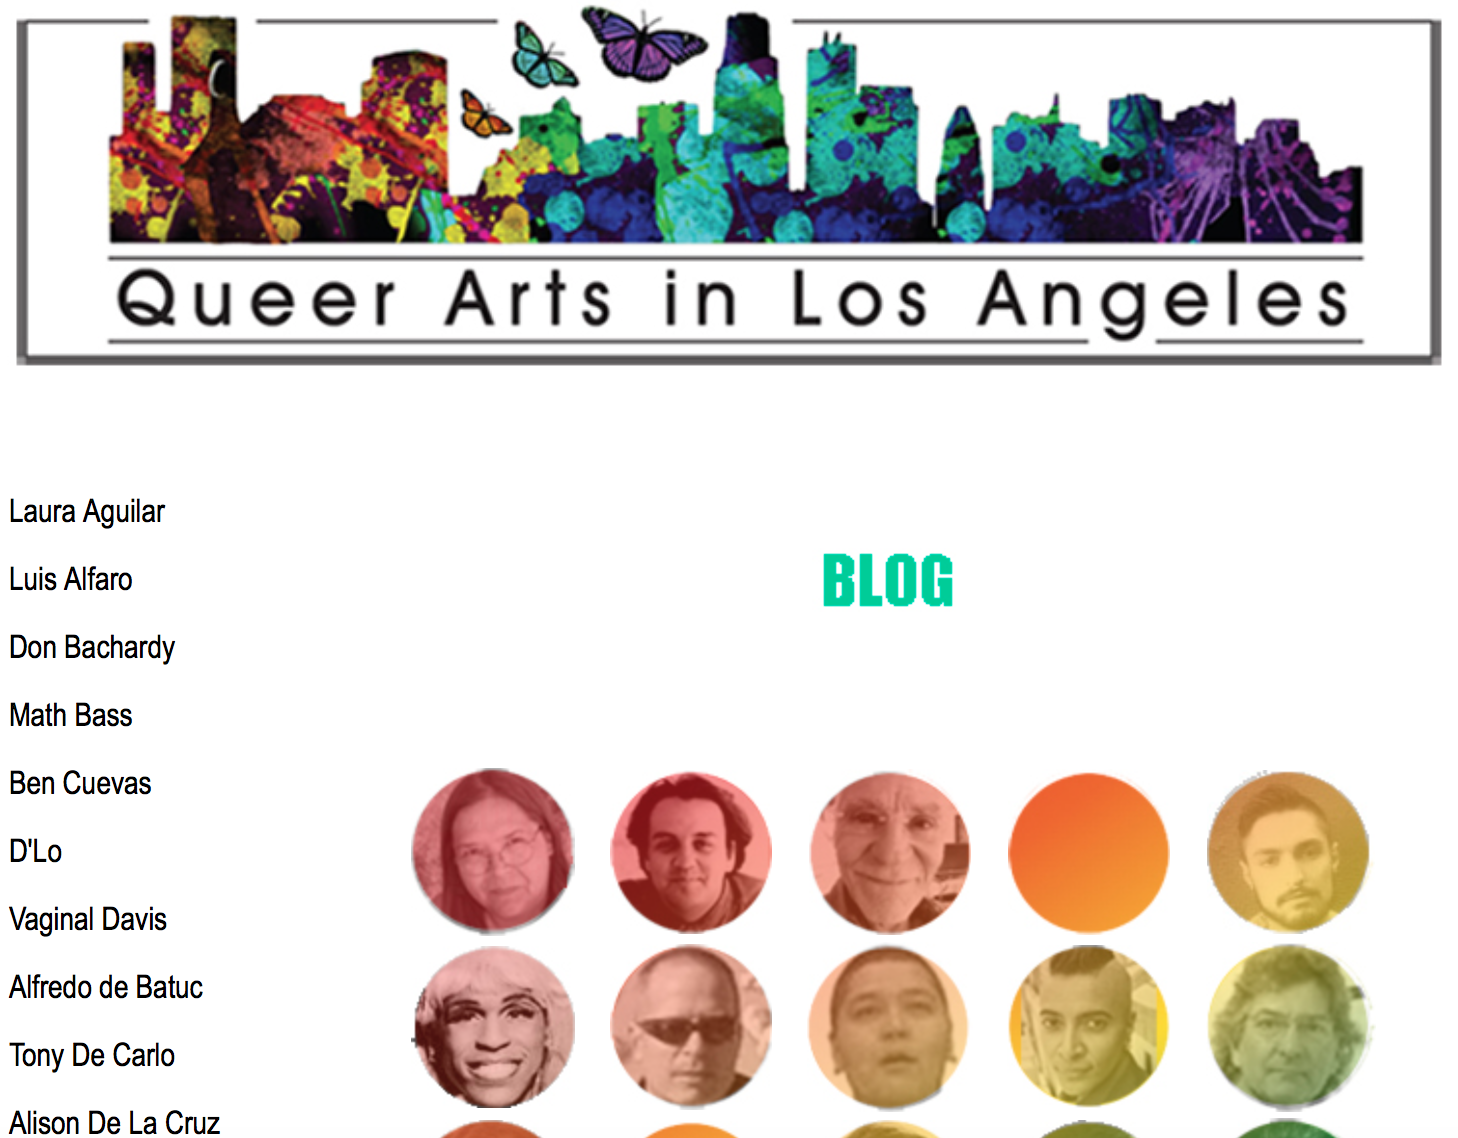 Queer Arts in LA website image